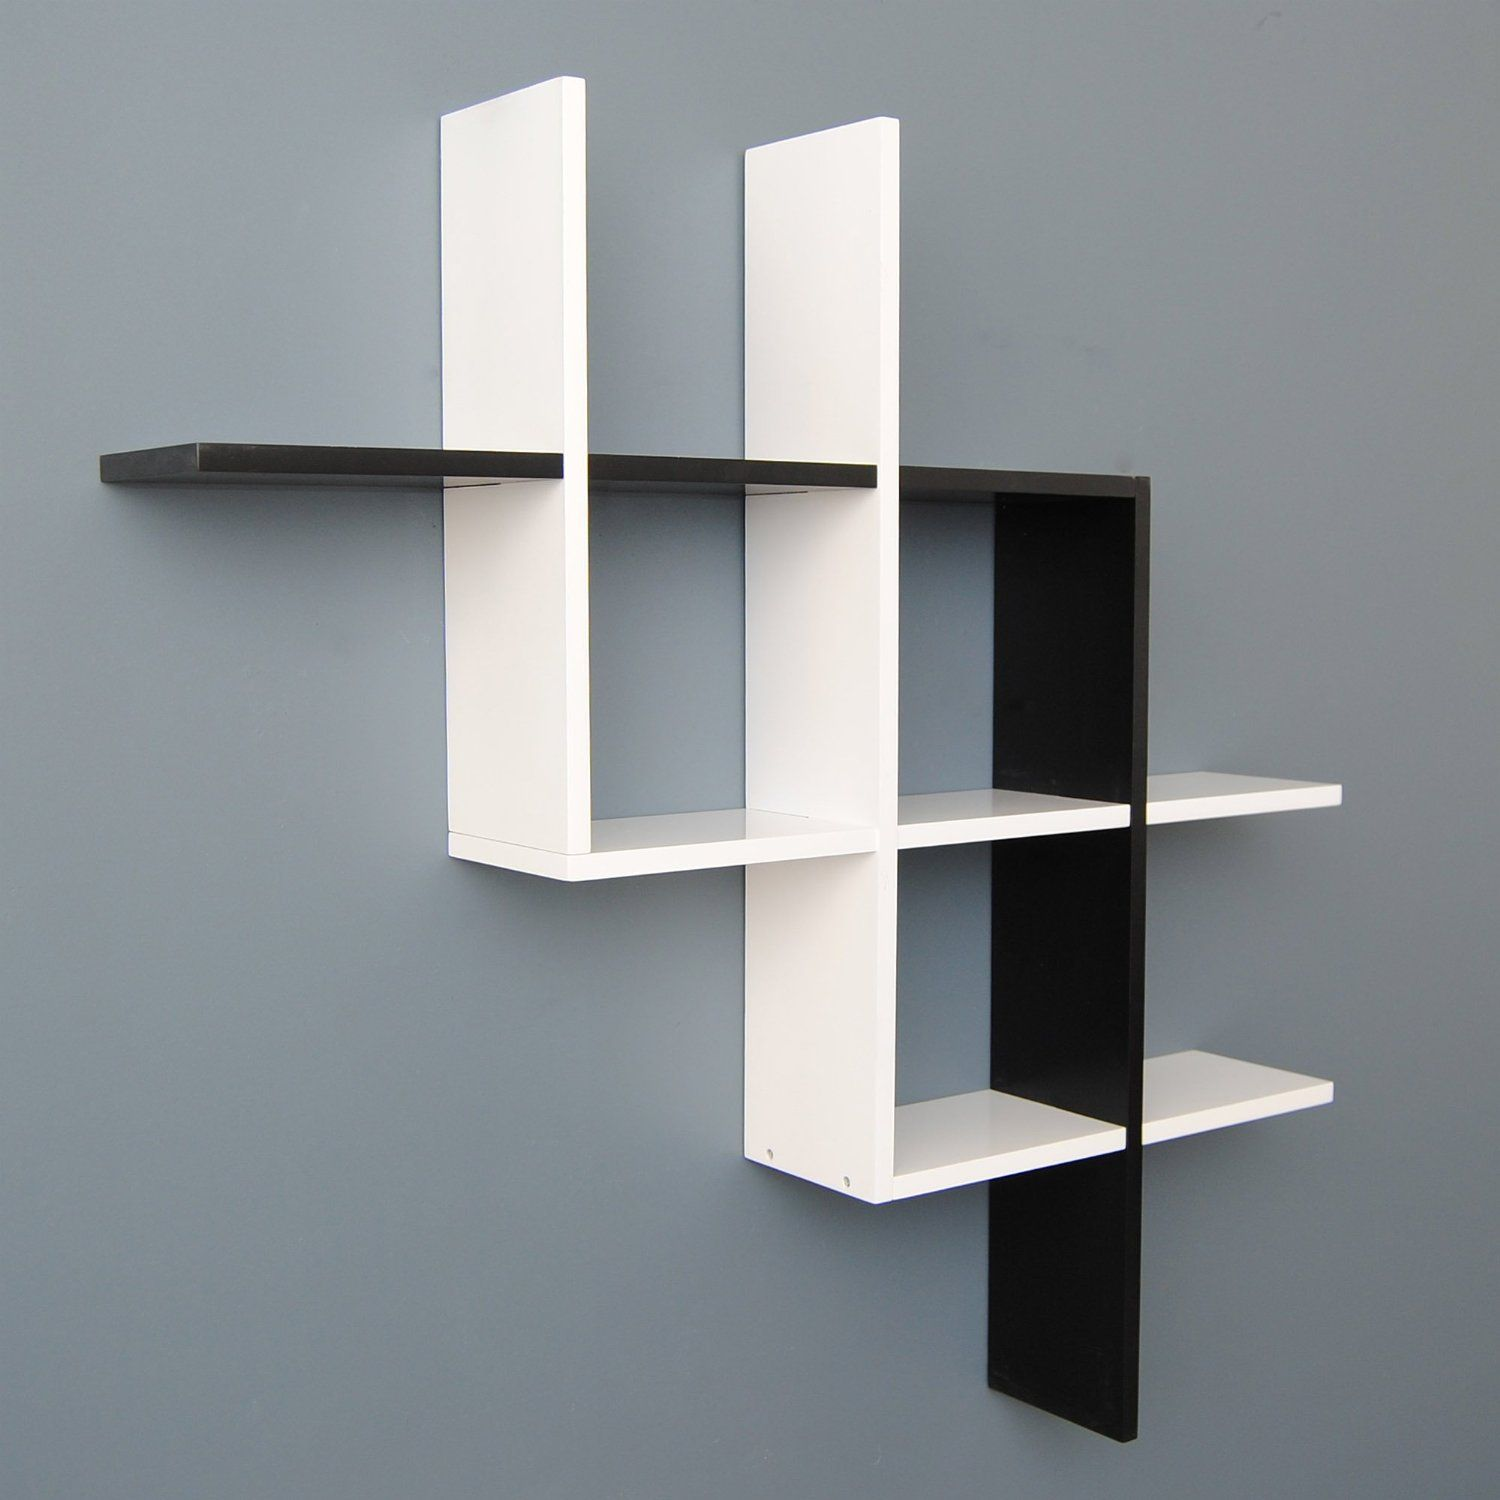 1000+ images about on the wall on pinterest | wall racks, shelves